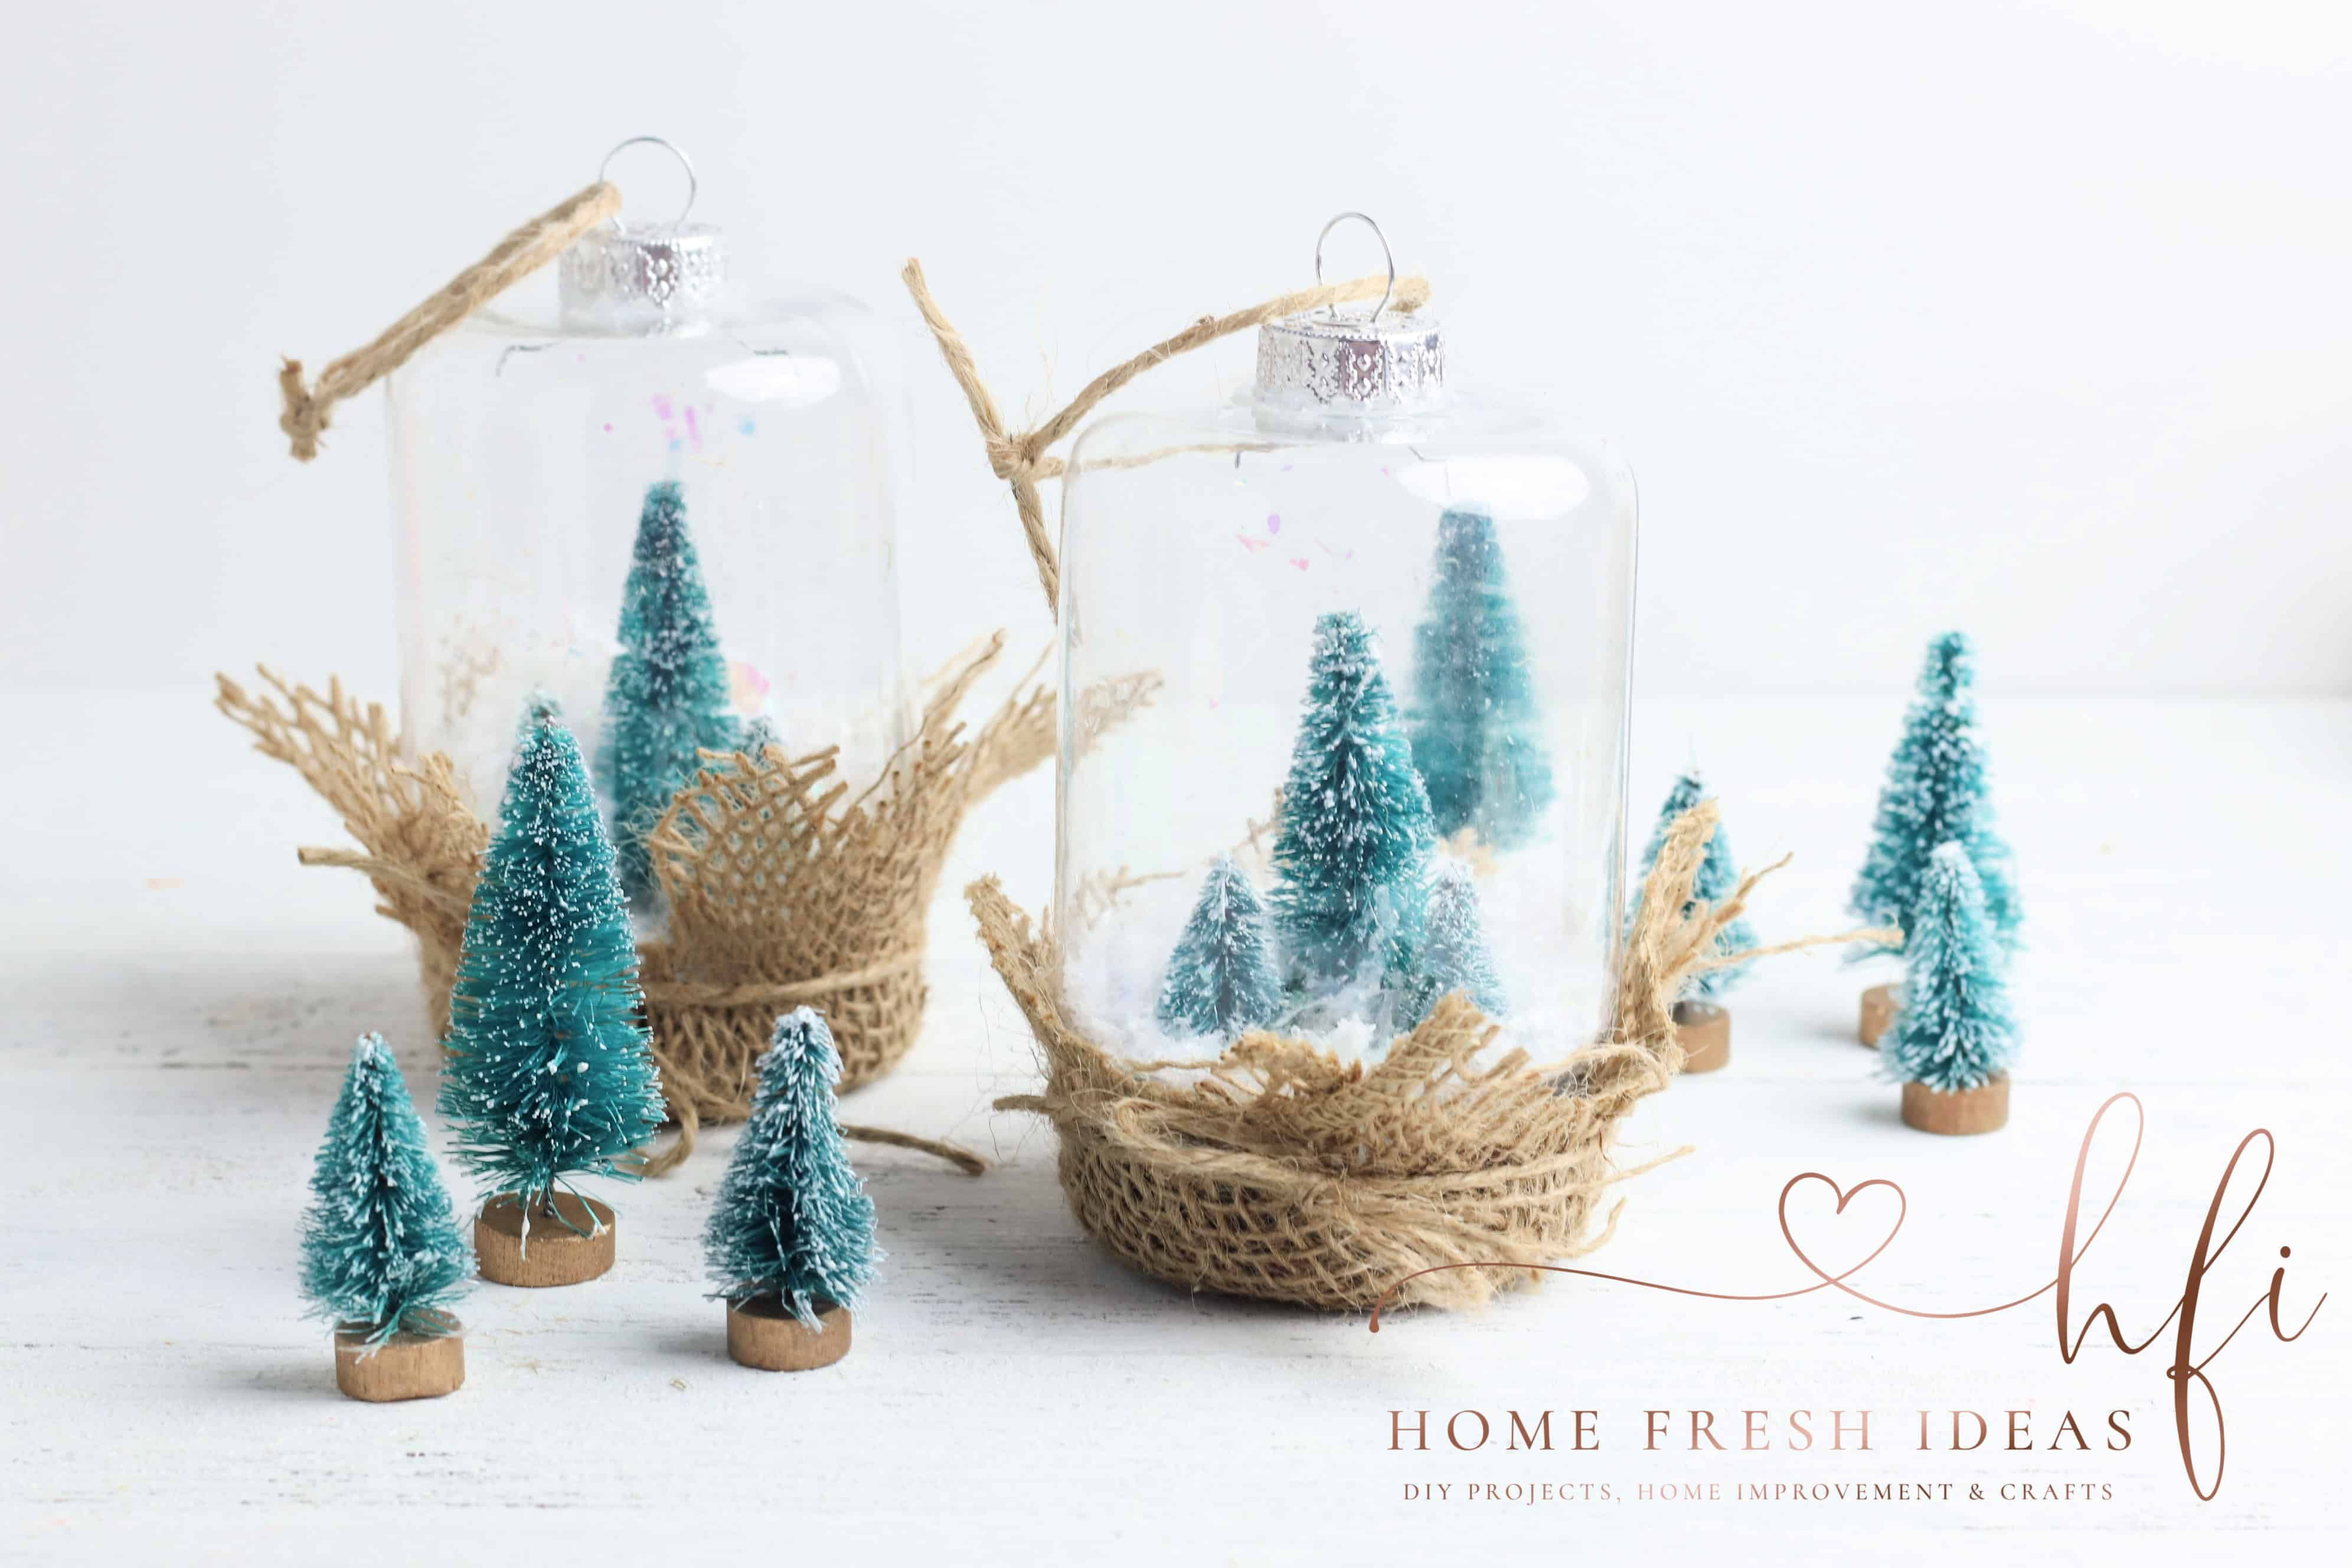 Festive DIY Christmas Snow Globe Christmas crafts to